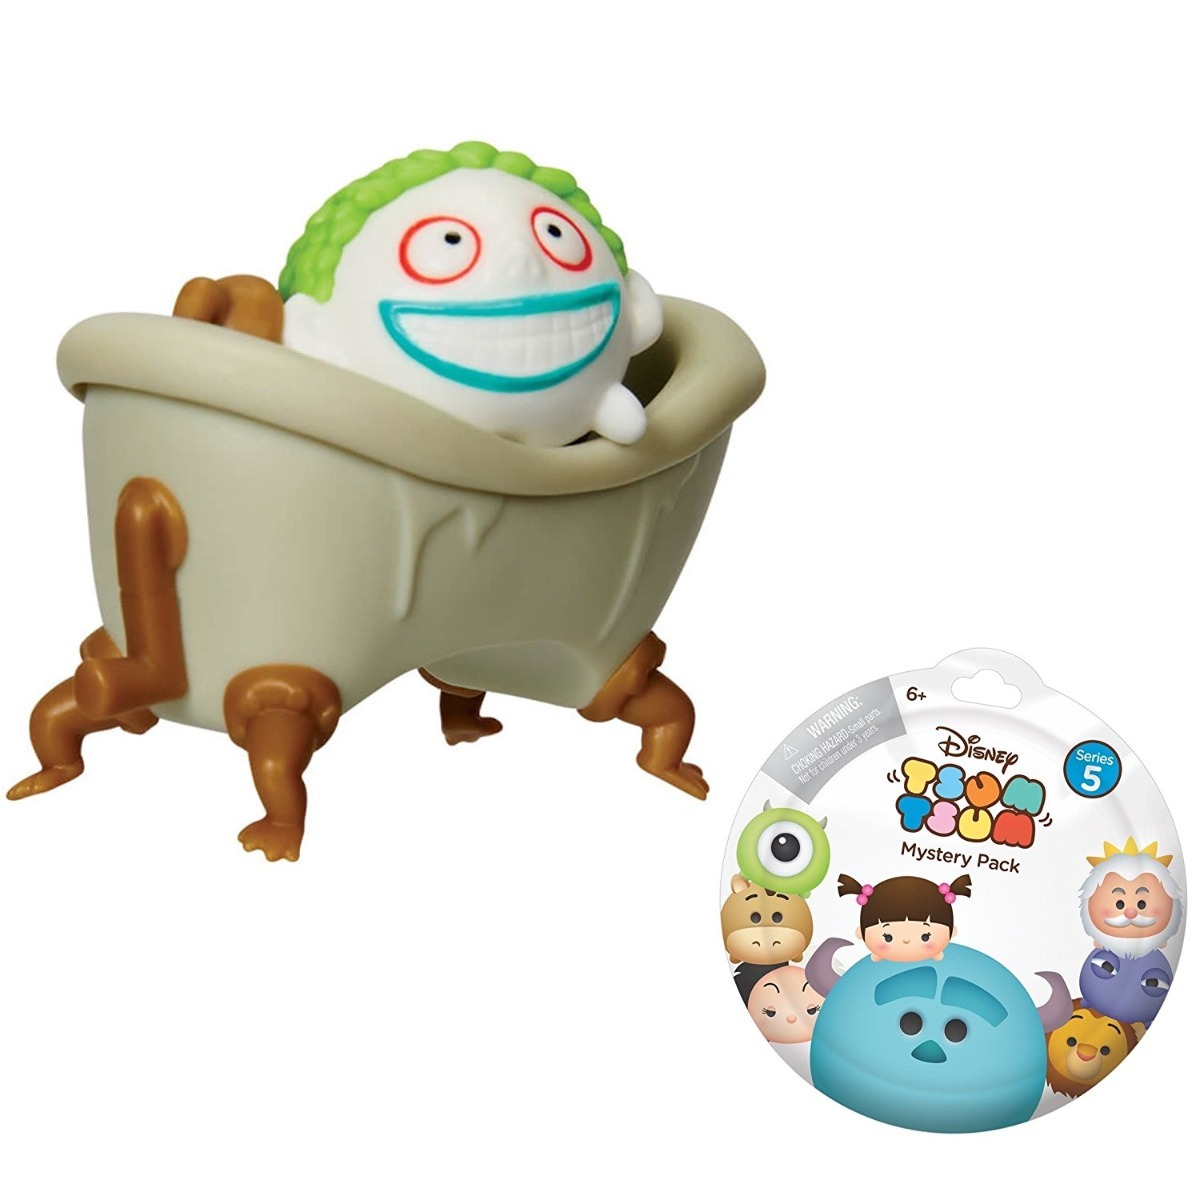 Tsum Tsum Barrel From The Nightmare Before Christmas Disney ...